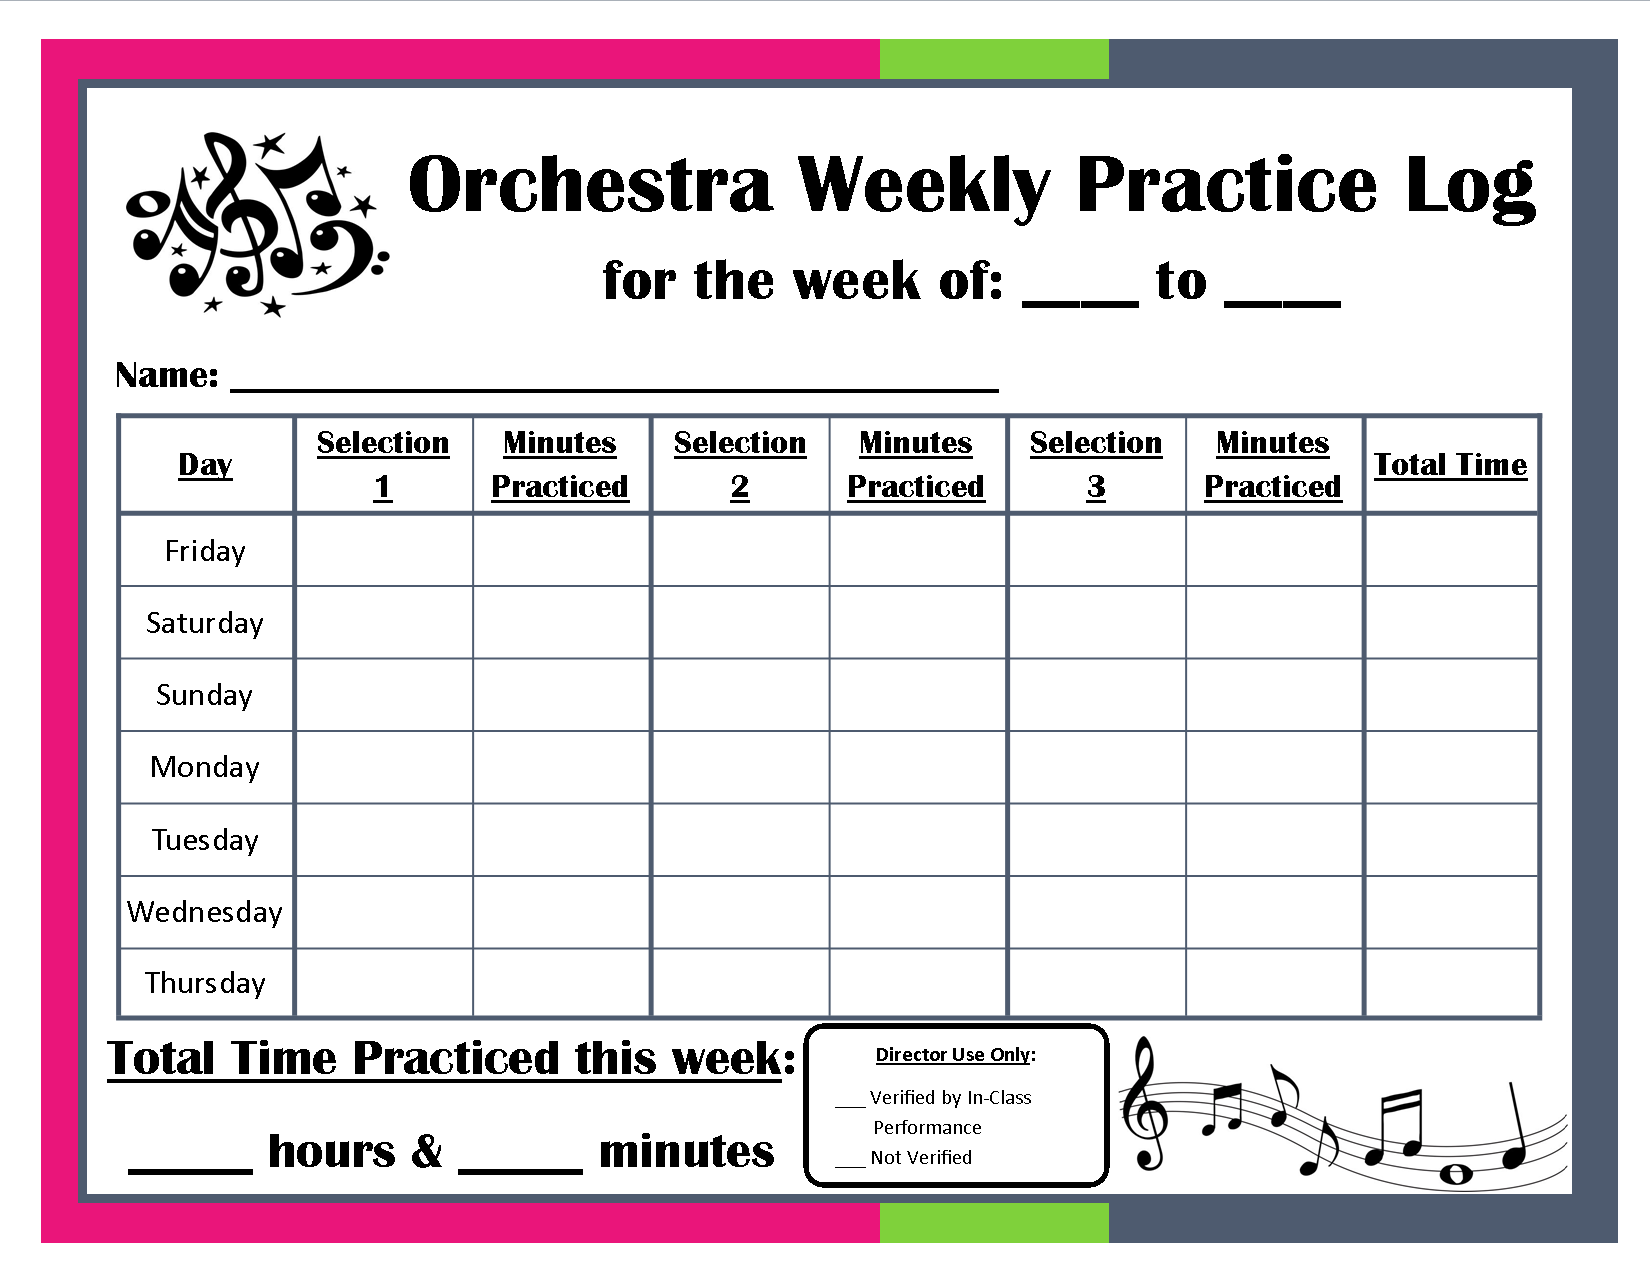 Orchestra Weekly Practice Log